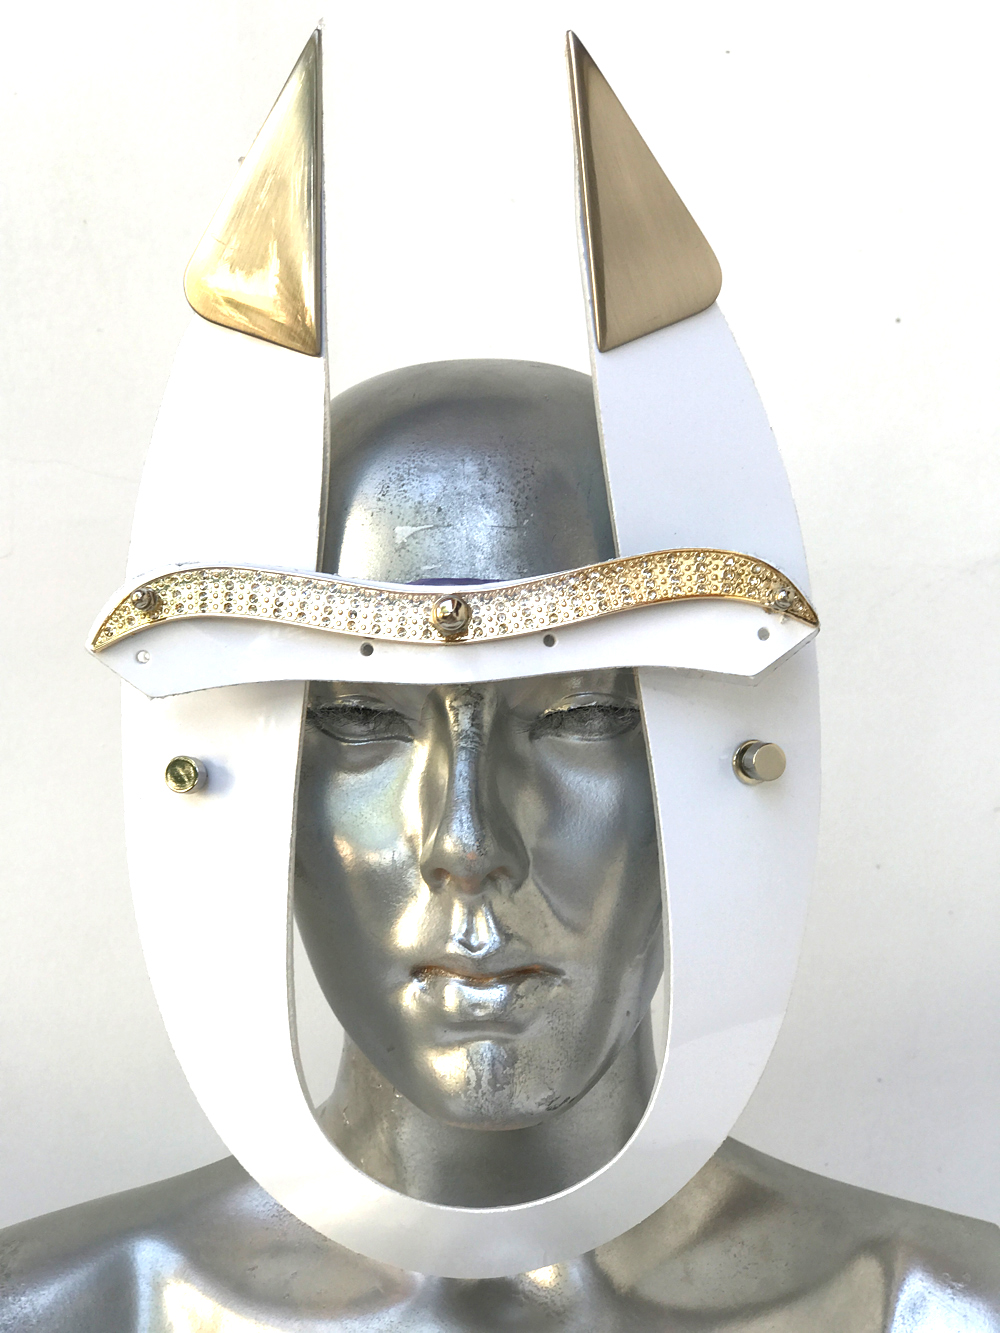 White Eye Wear Mask With Horns And Metal Components